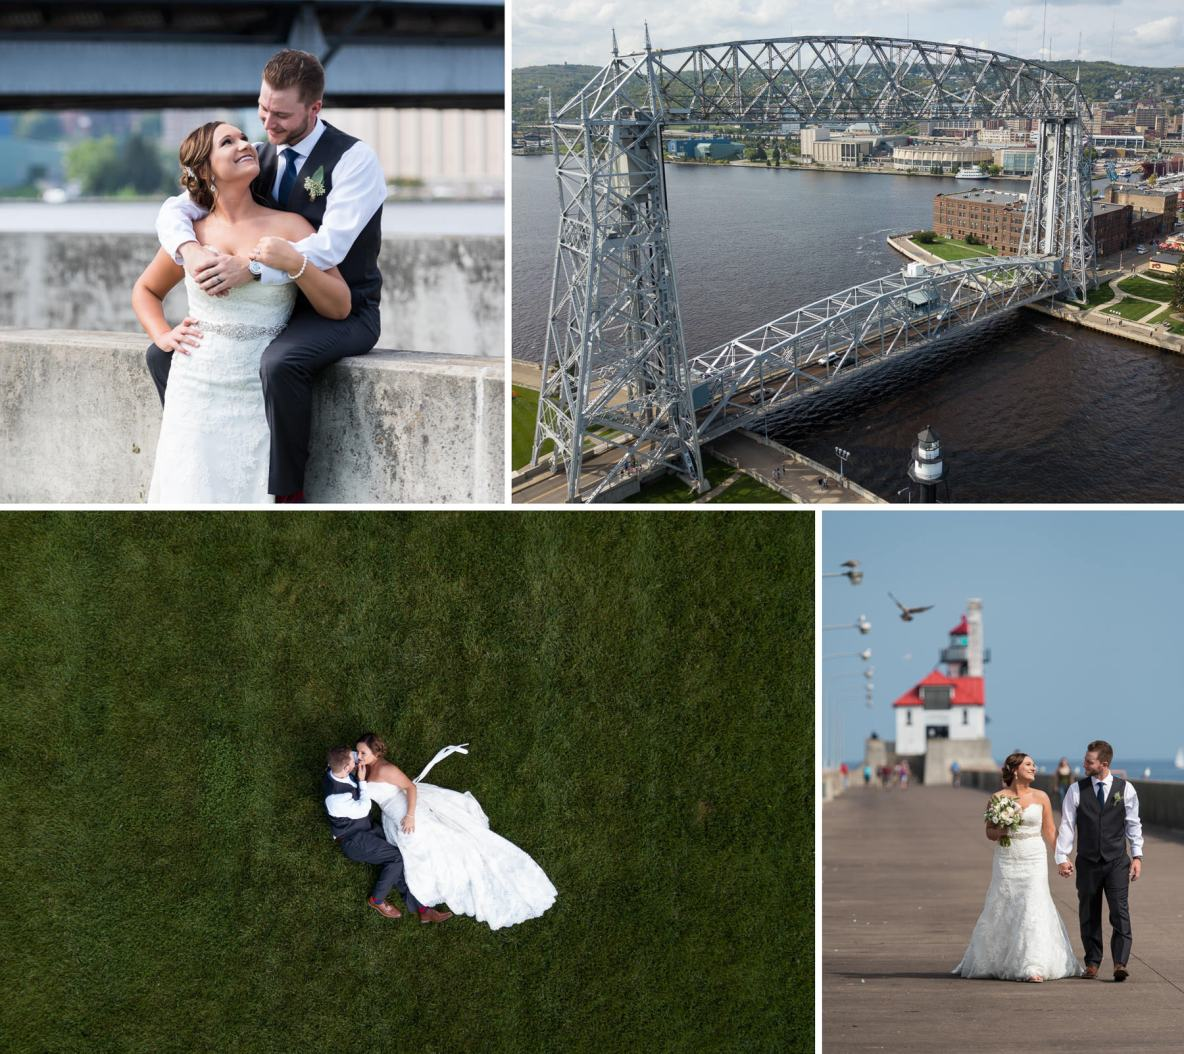 Photos of the bride and groom in Duluth, MN.